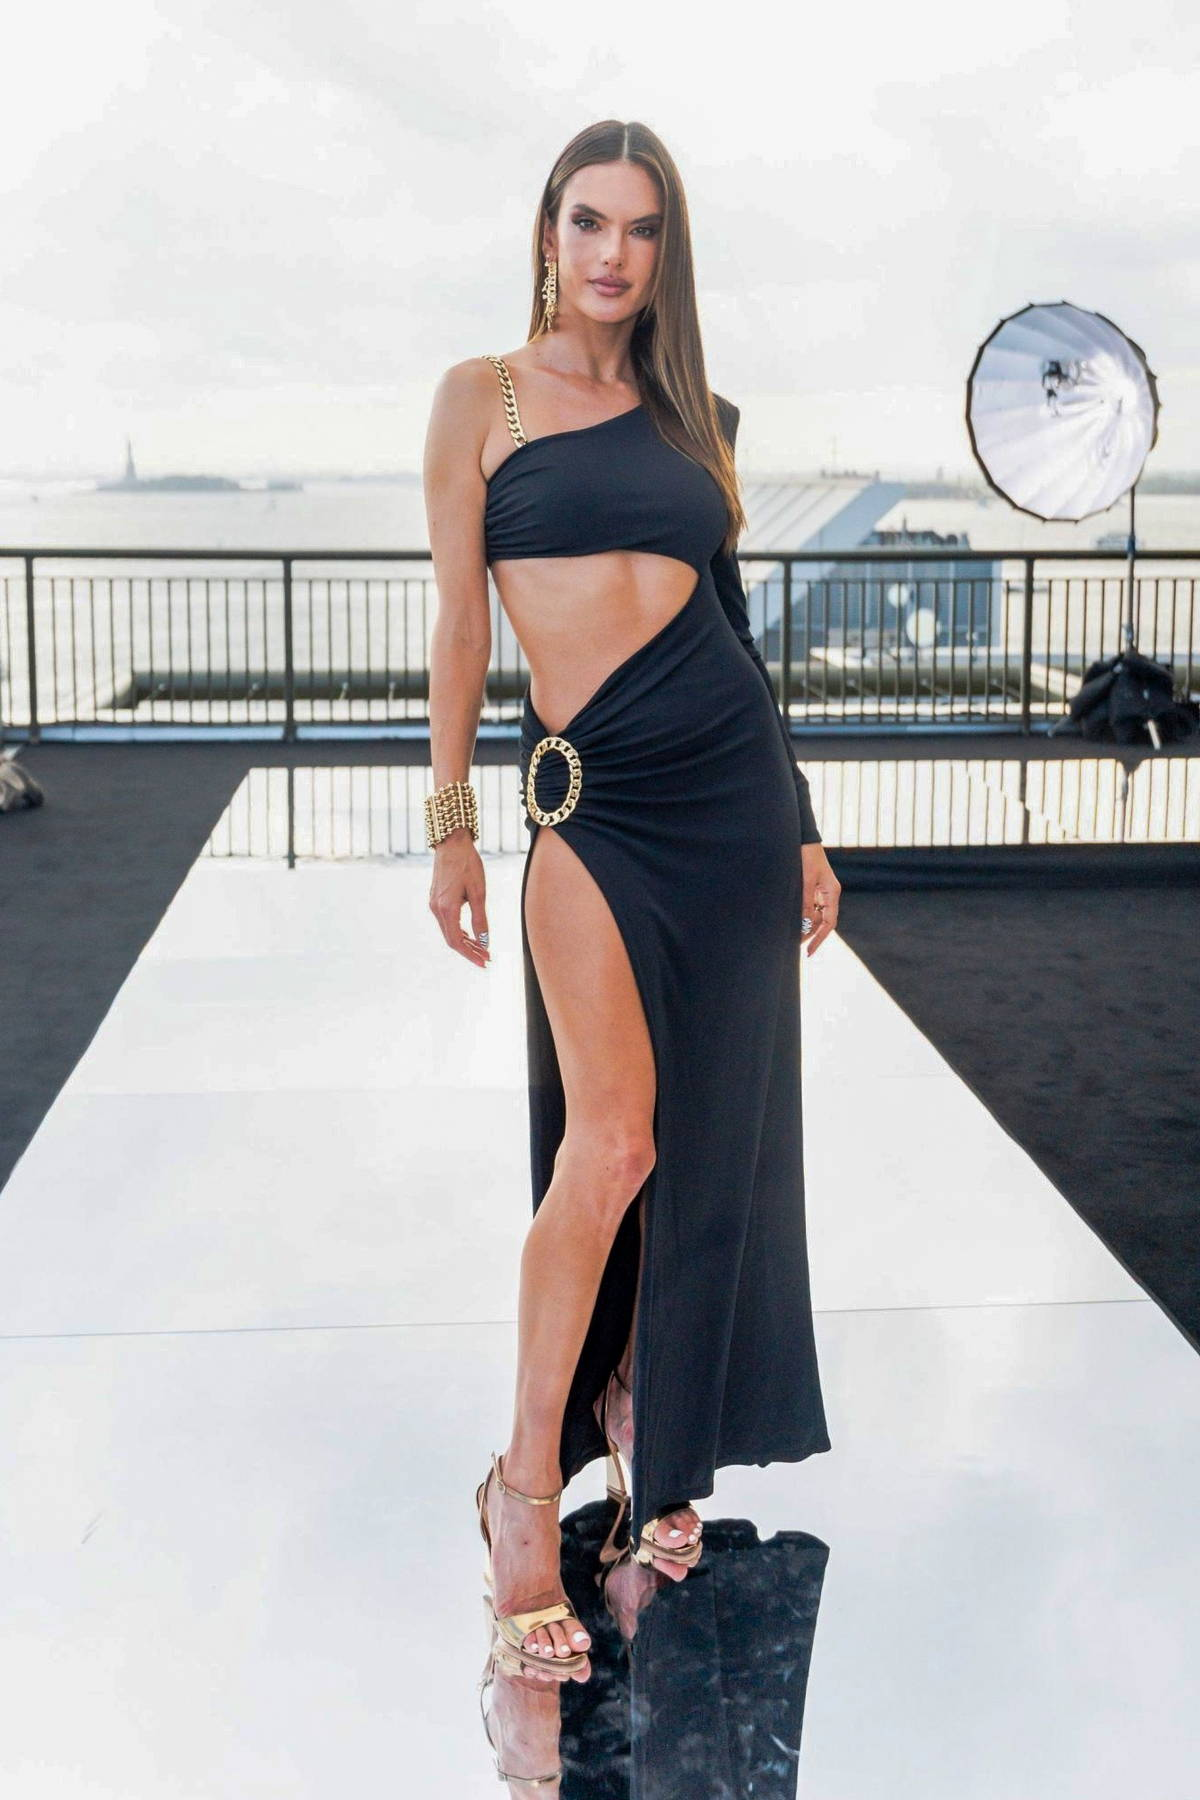 Alessandra Ambrosio attends the Dundas x Revolve fashion show during New York Fashion Week in New York City